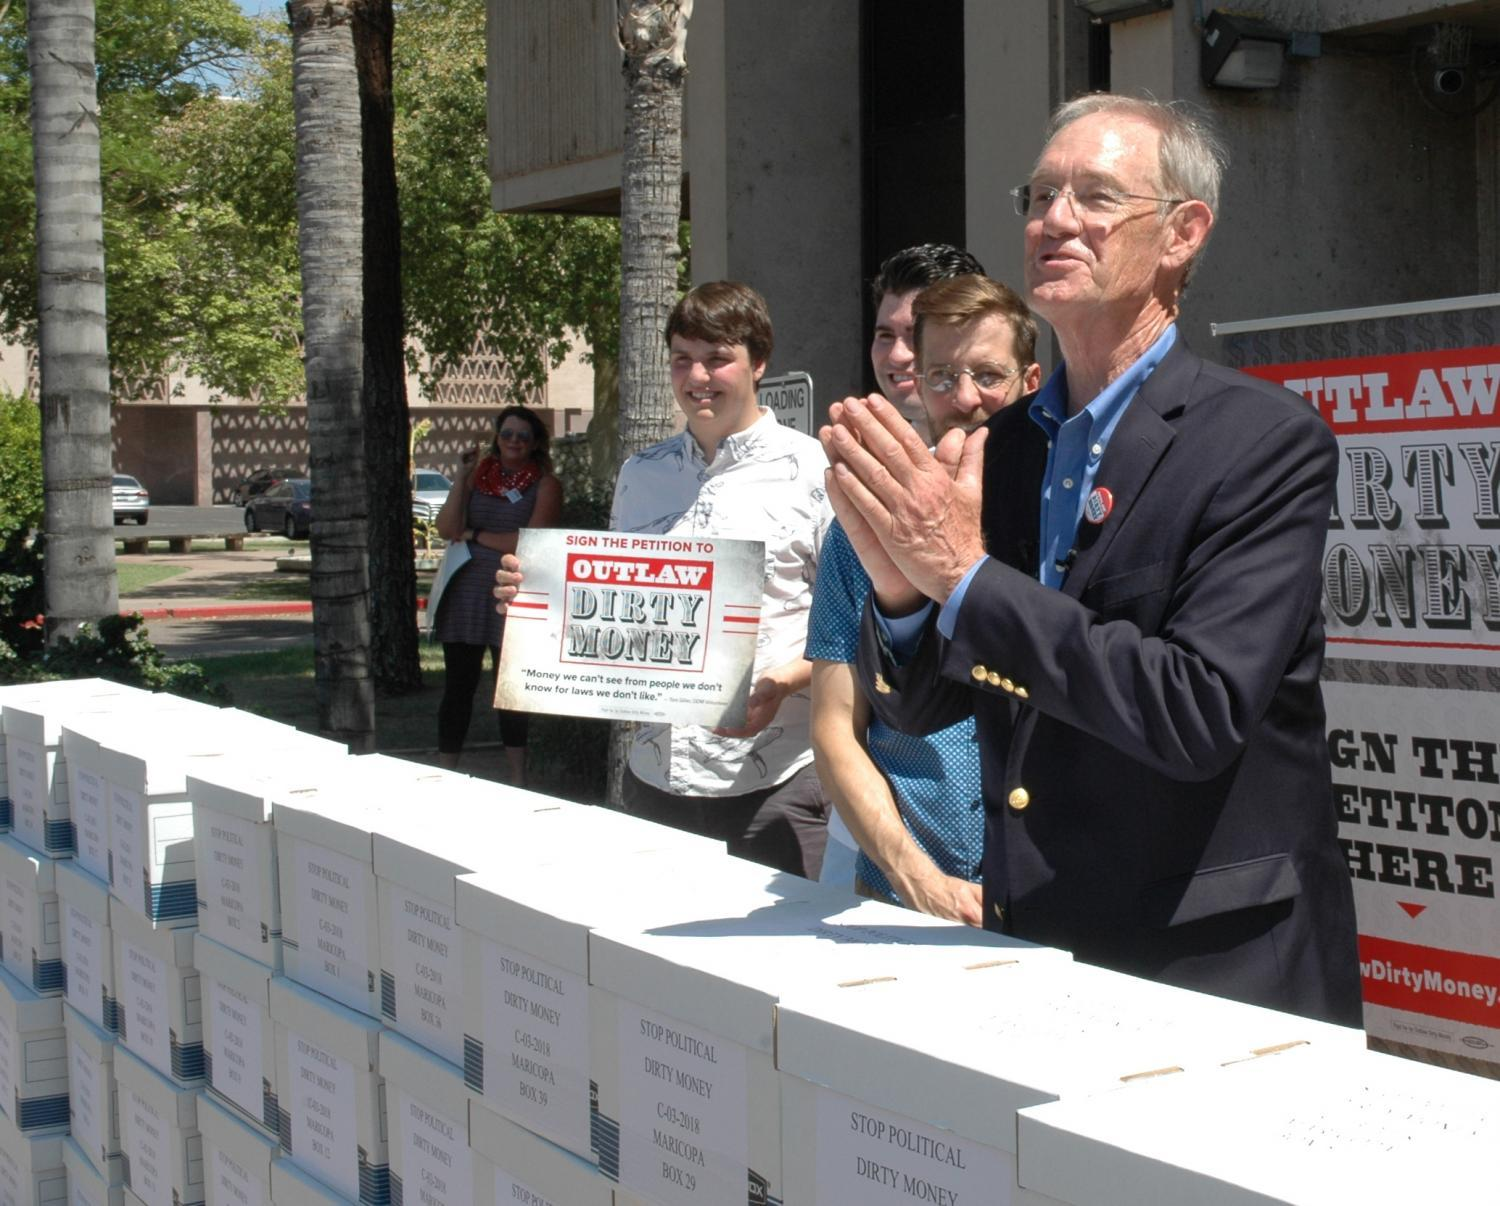 Terry Goddard stands behind a row of boxes containing signatures. Supporters with signs stand behind him.